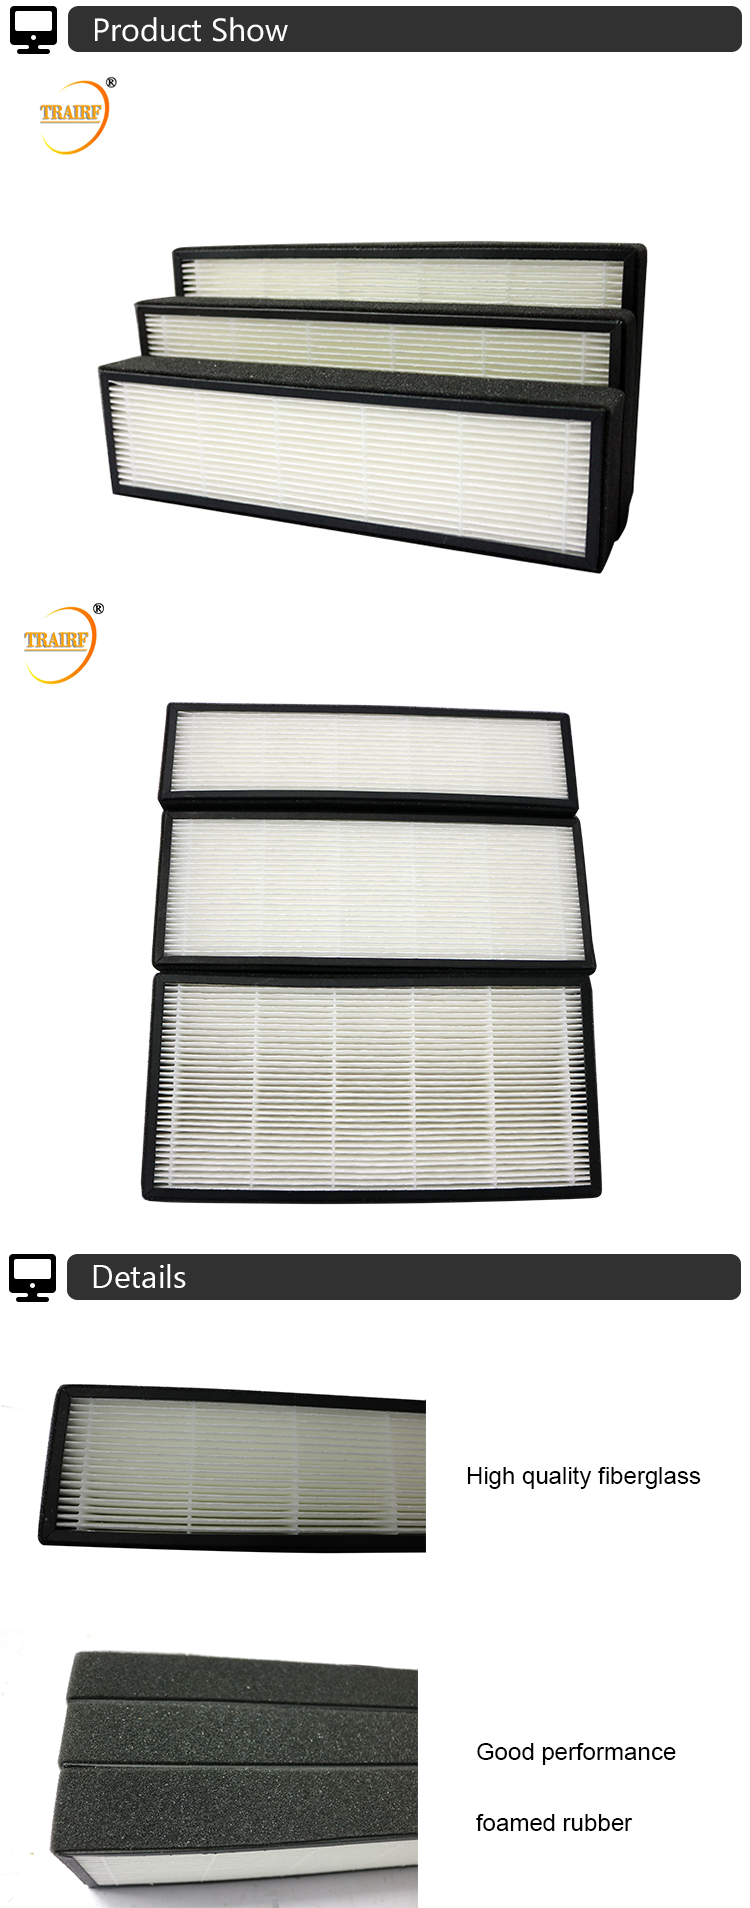 Hepa H13 Air Filter for home air purifier filter vacuum cleaner hepa filter